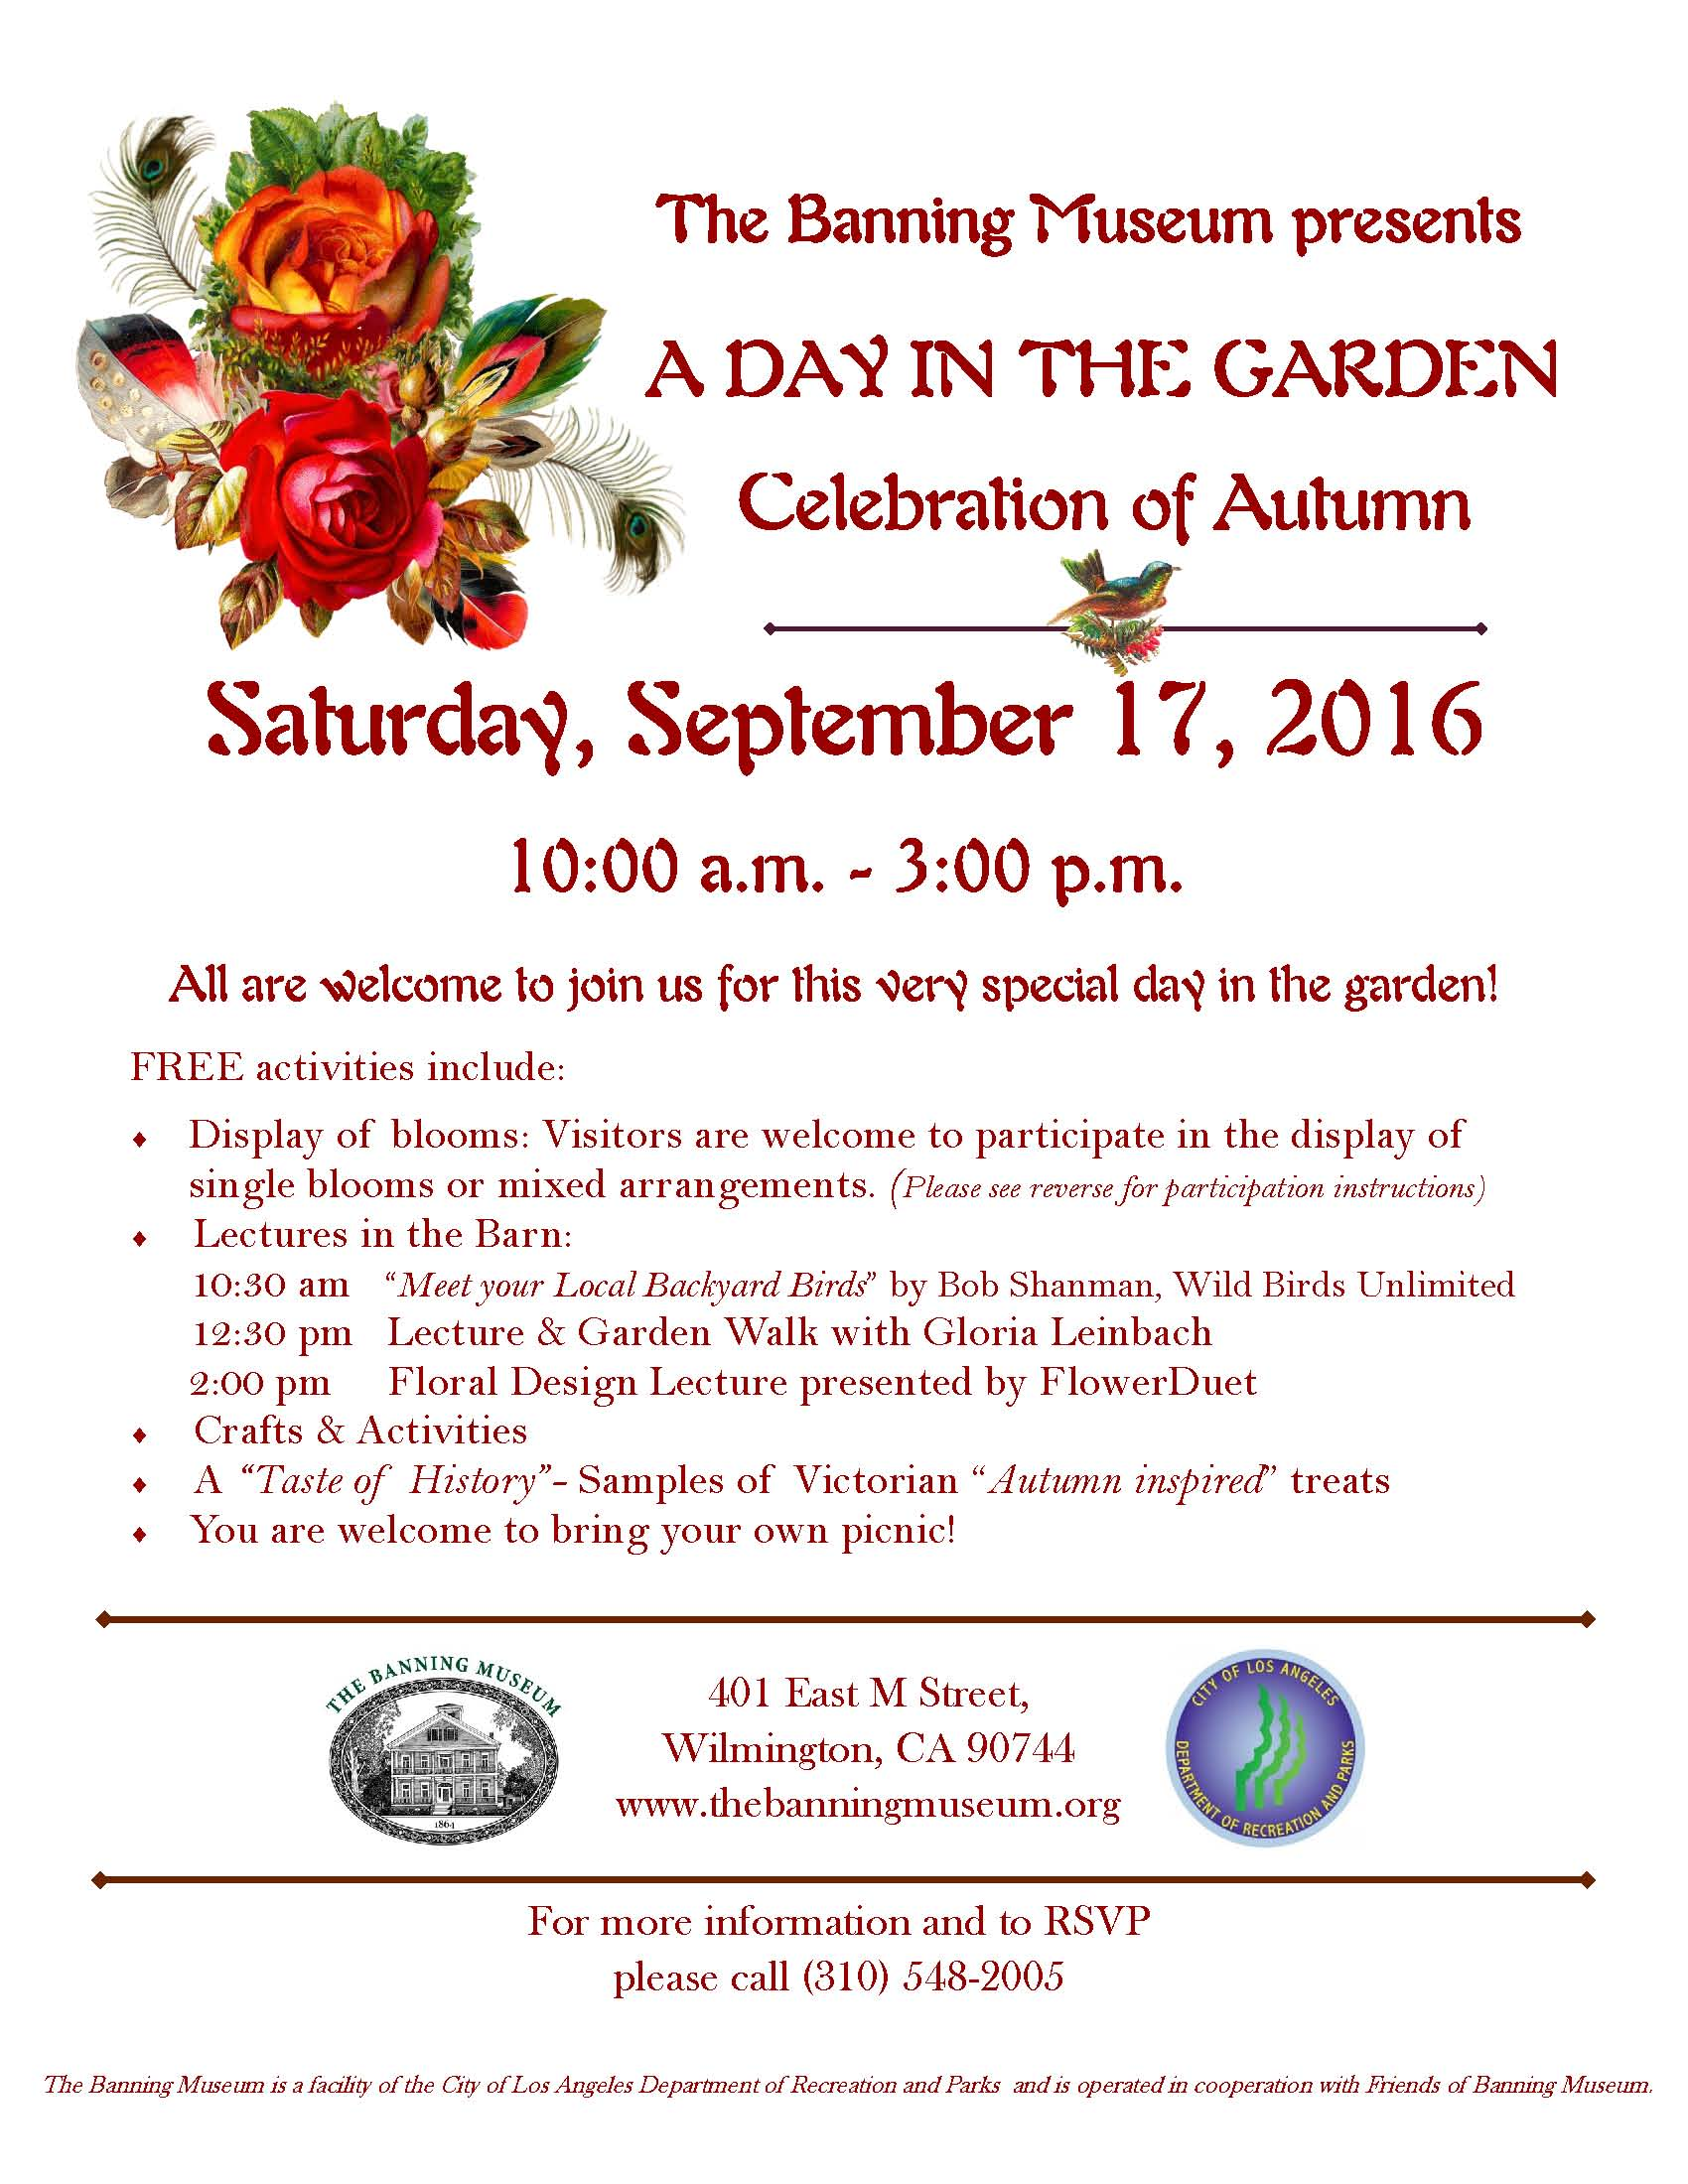 A-Day-in-the-Garden-Flyer-2016_Page_1